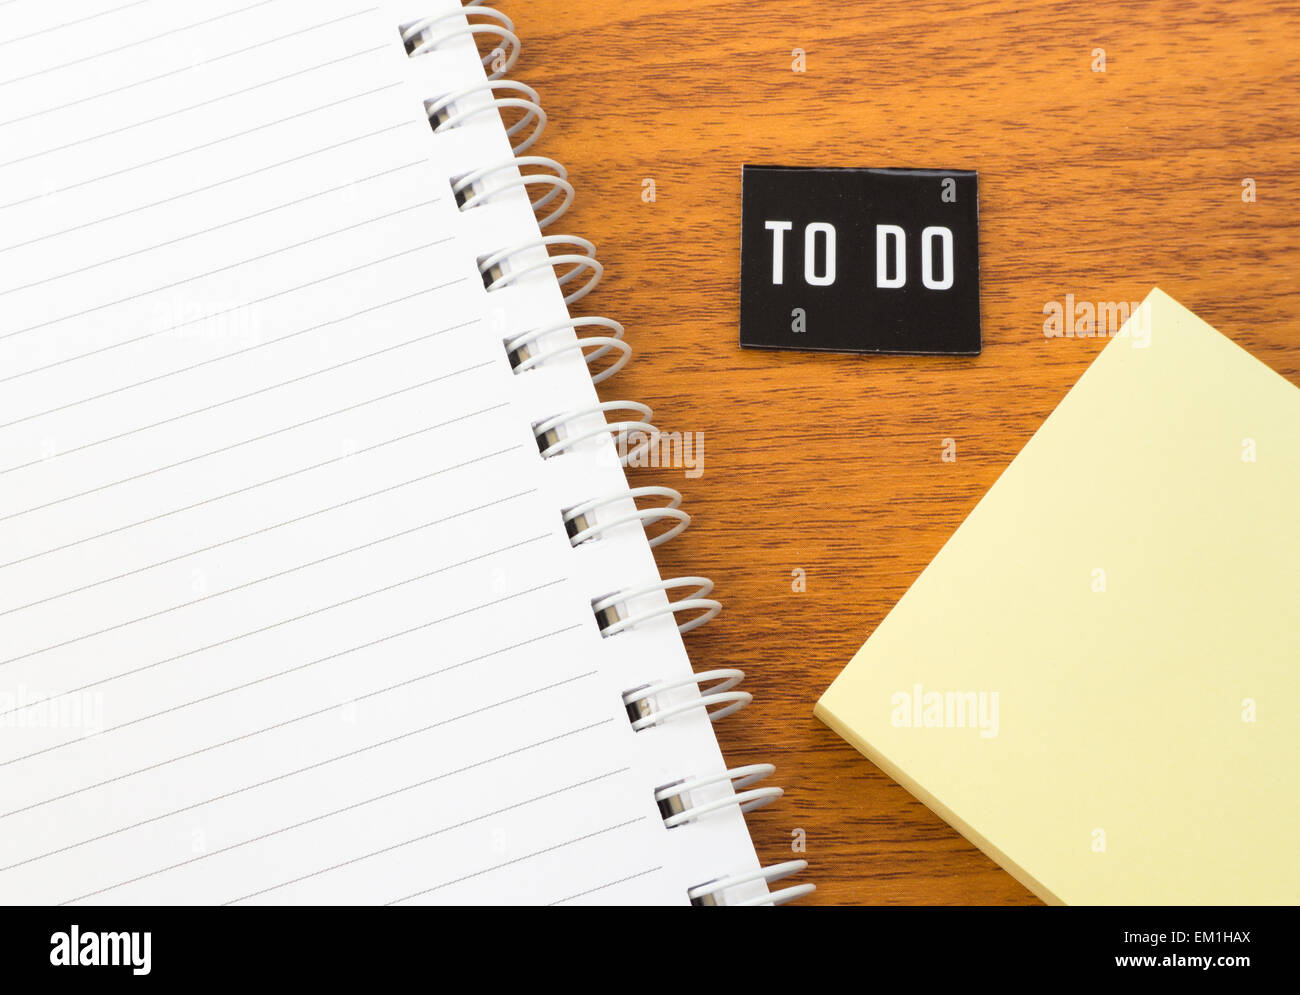 Open Blank Book with To Do List and Yellow Postit on Wooden Table - Stock Image